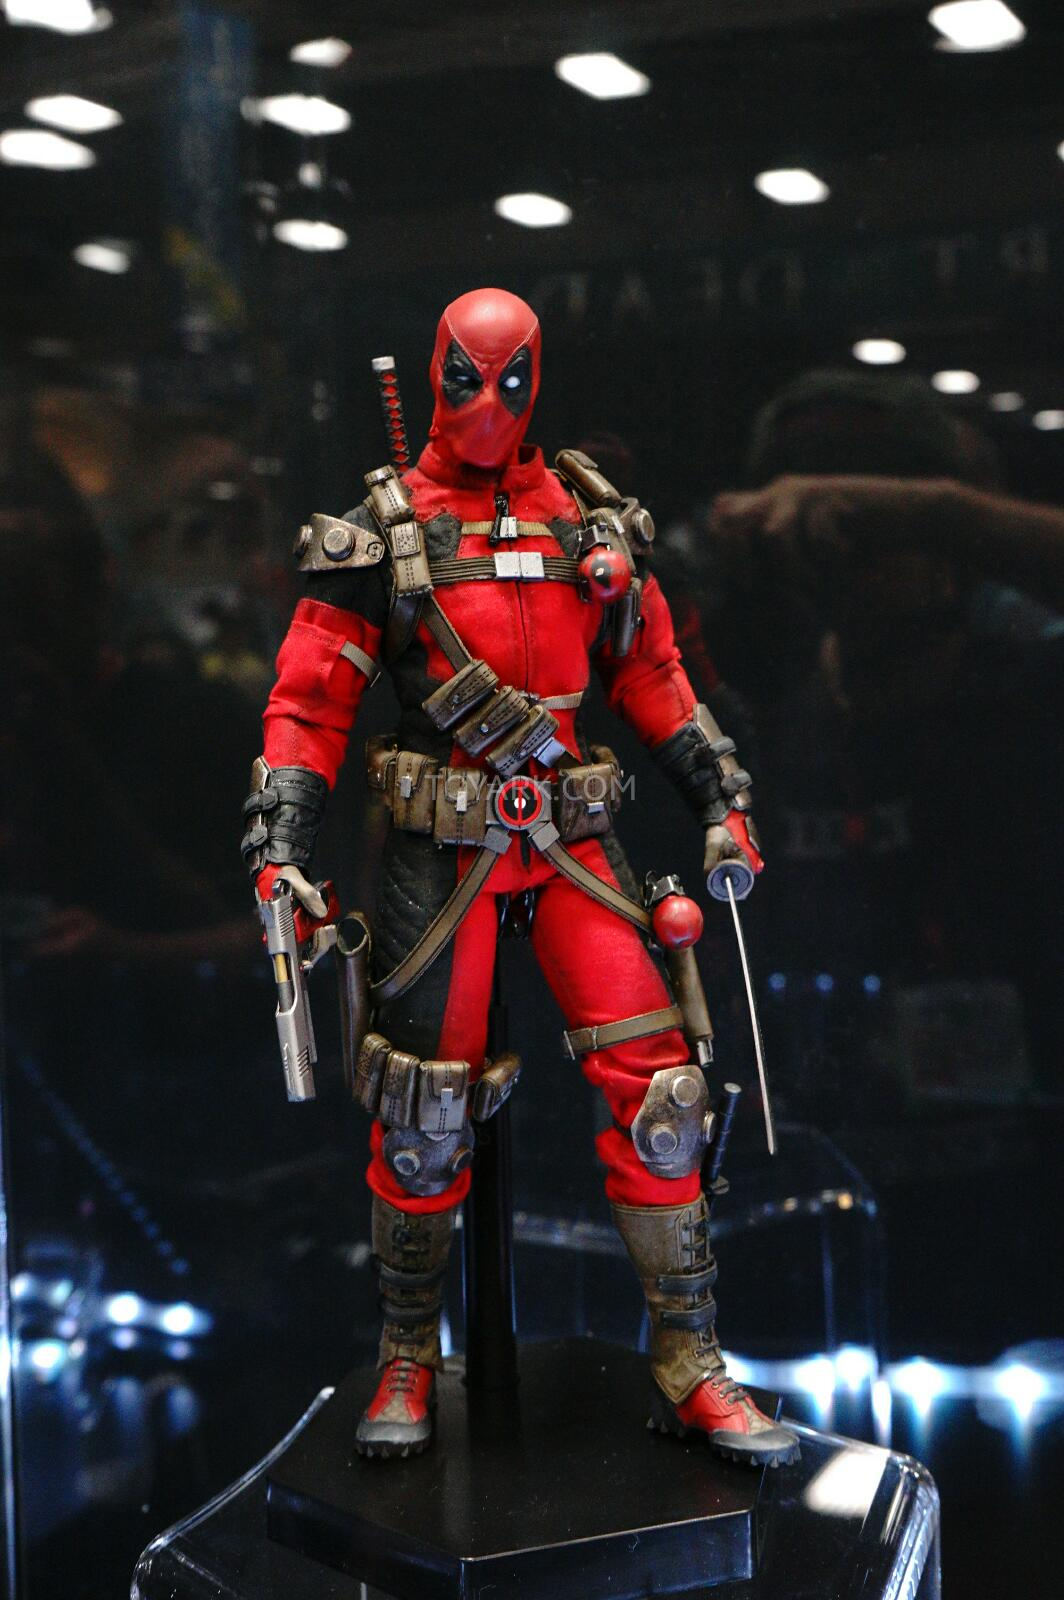 [Sideshow] Marvel Sixth Scale Collection - Deadpool DSC07541